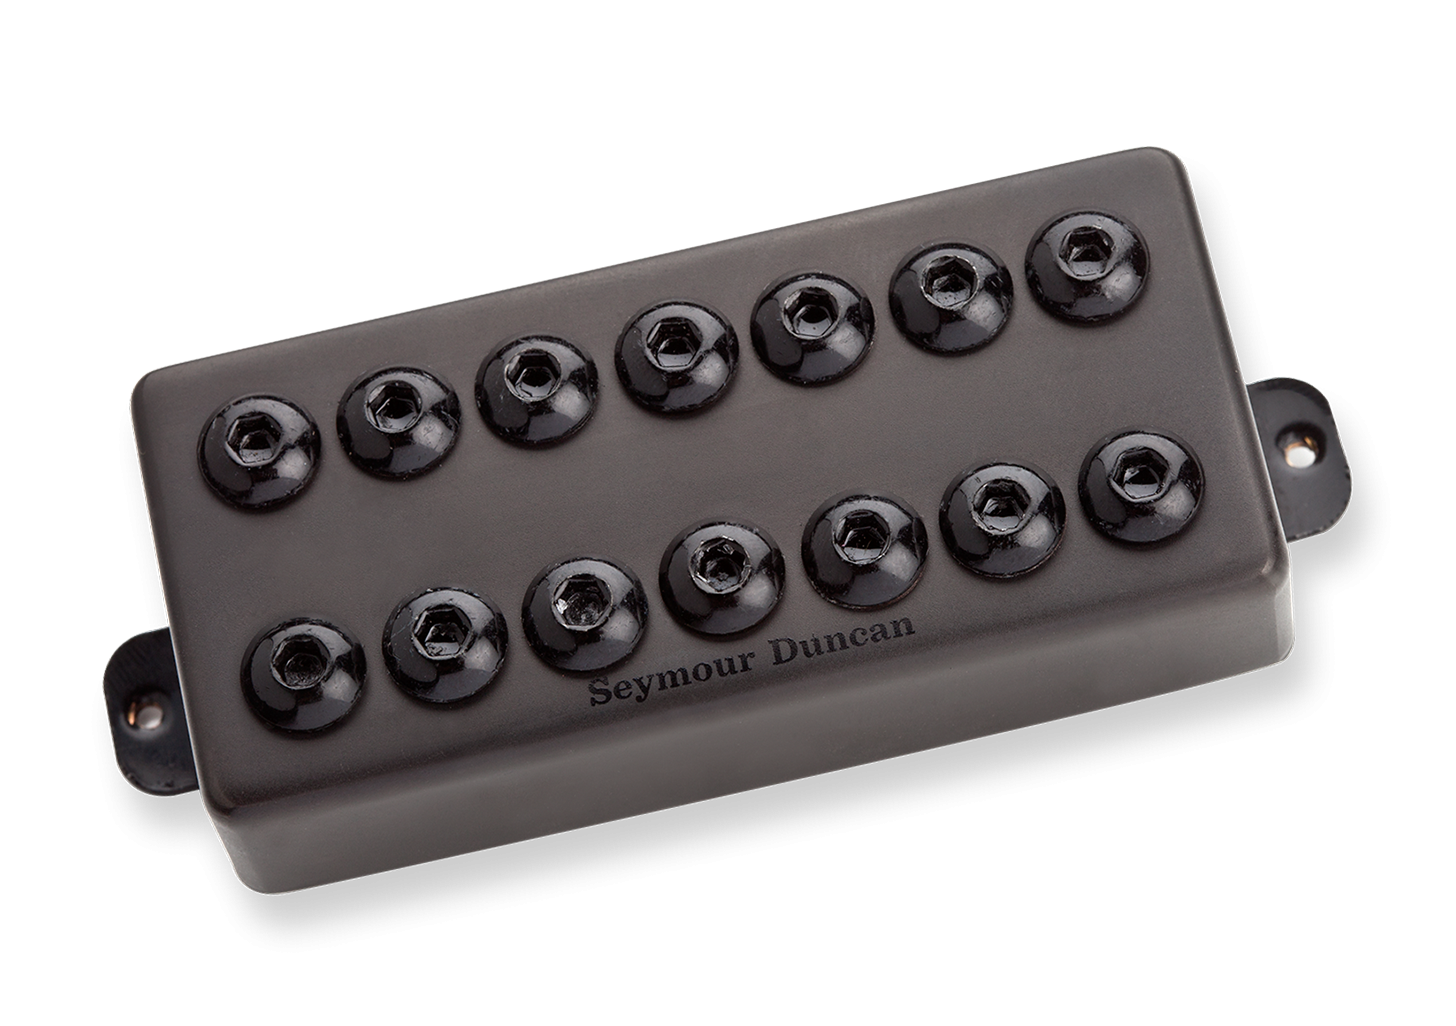 Seymour Duncan Invader Humbucker - SH-8B 7 String Bridge Passive Mount Black Metal